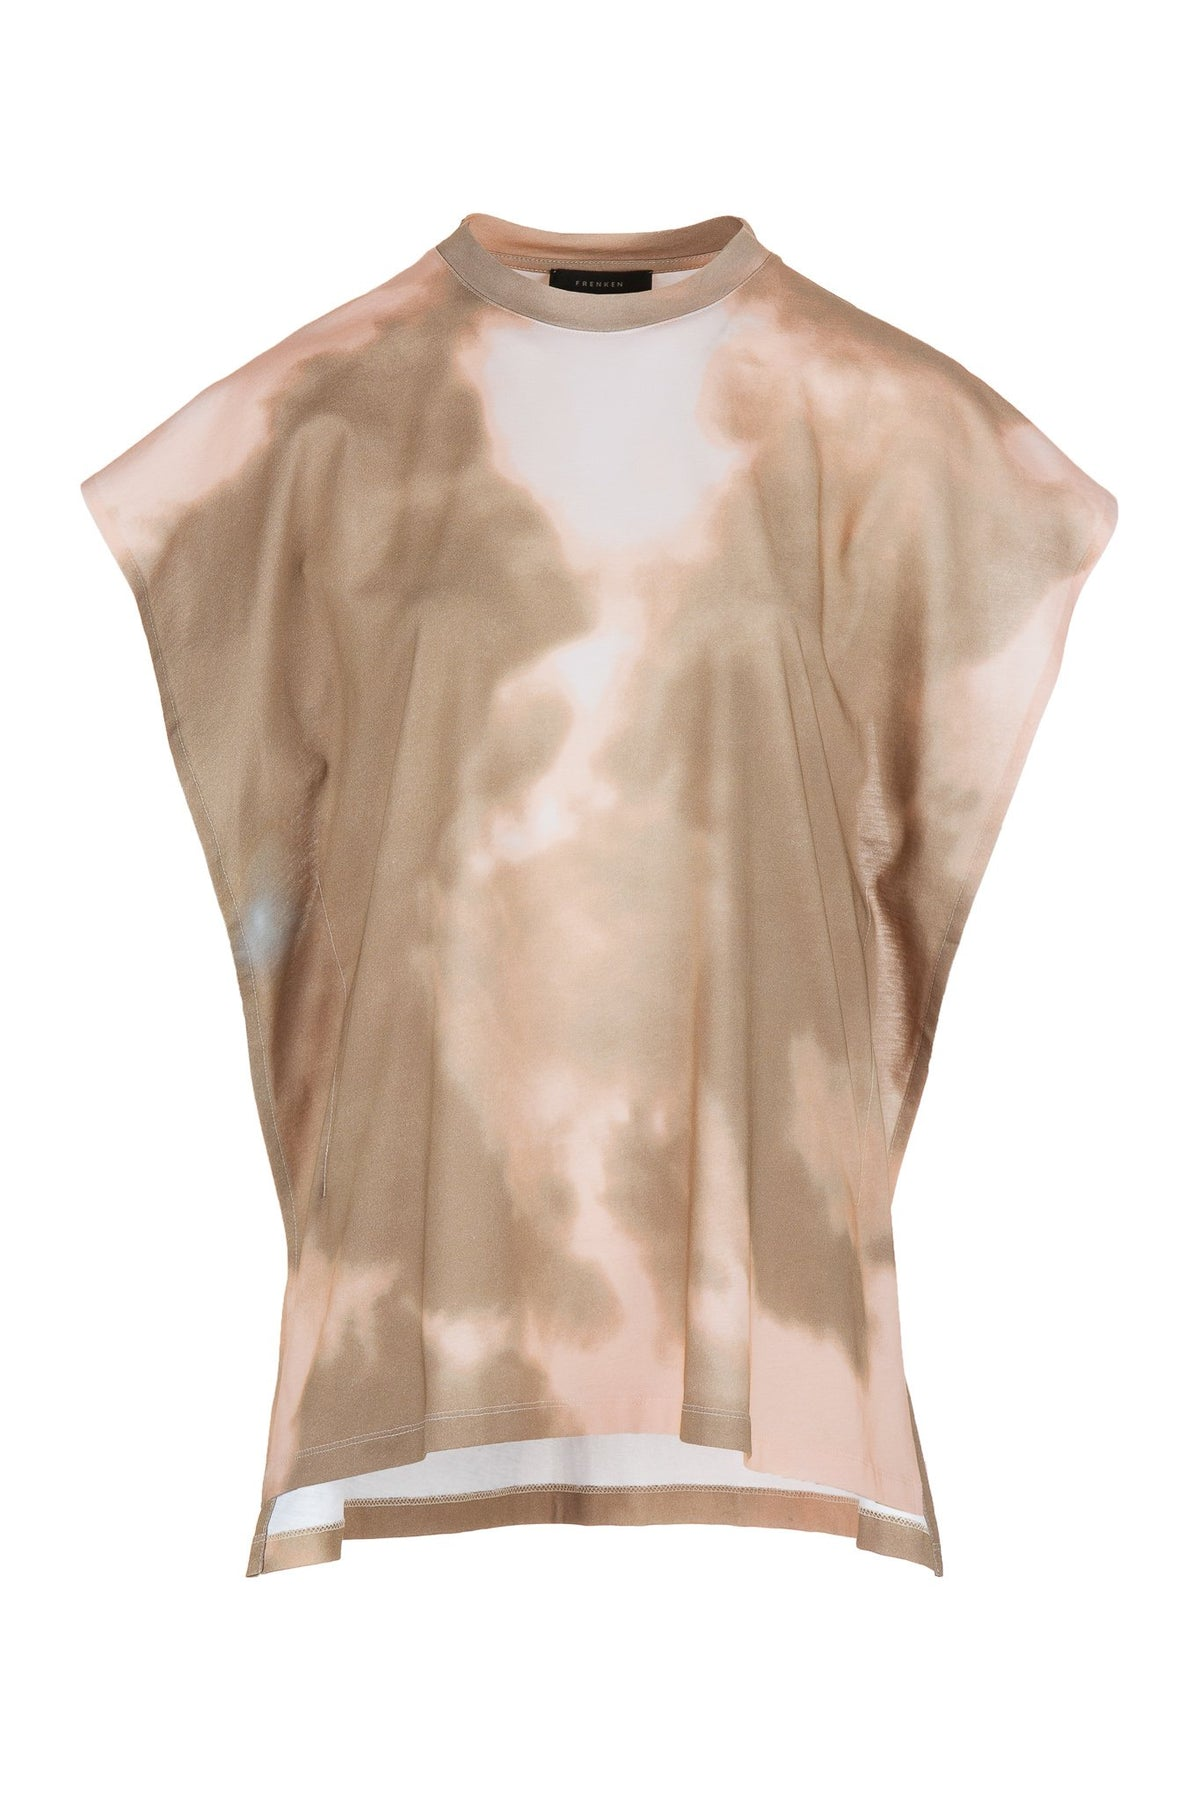 Cloud | Top | Beige Smoke Print